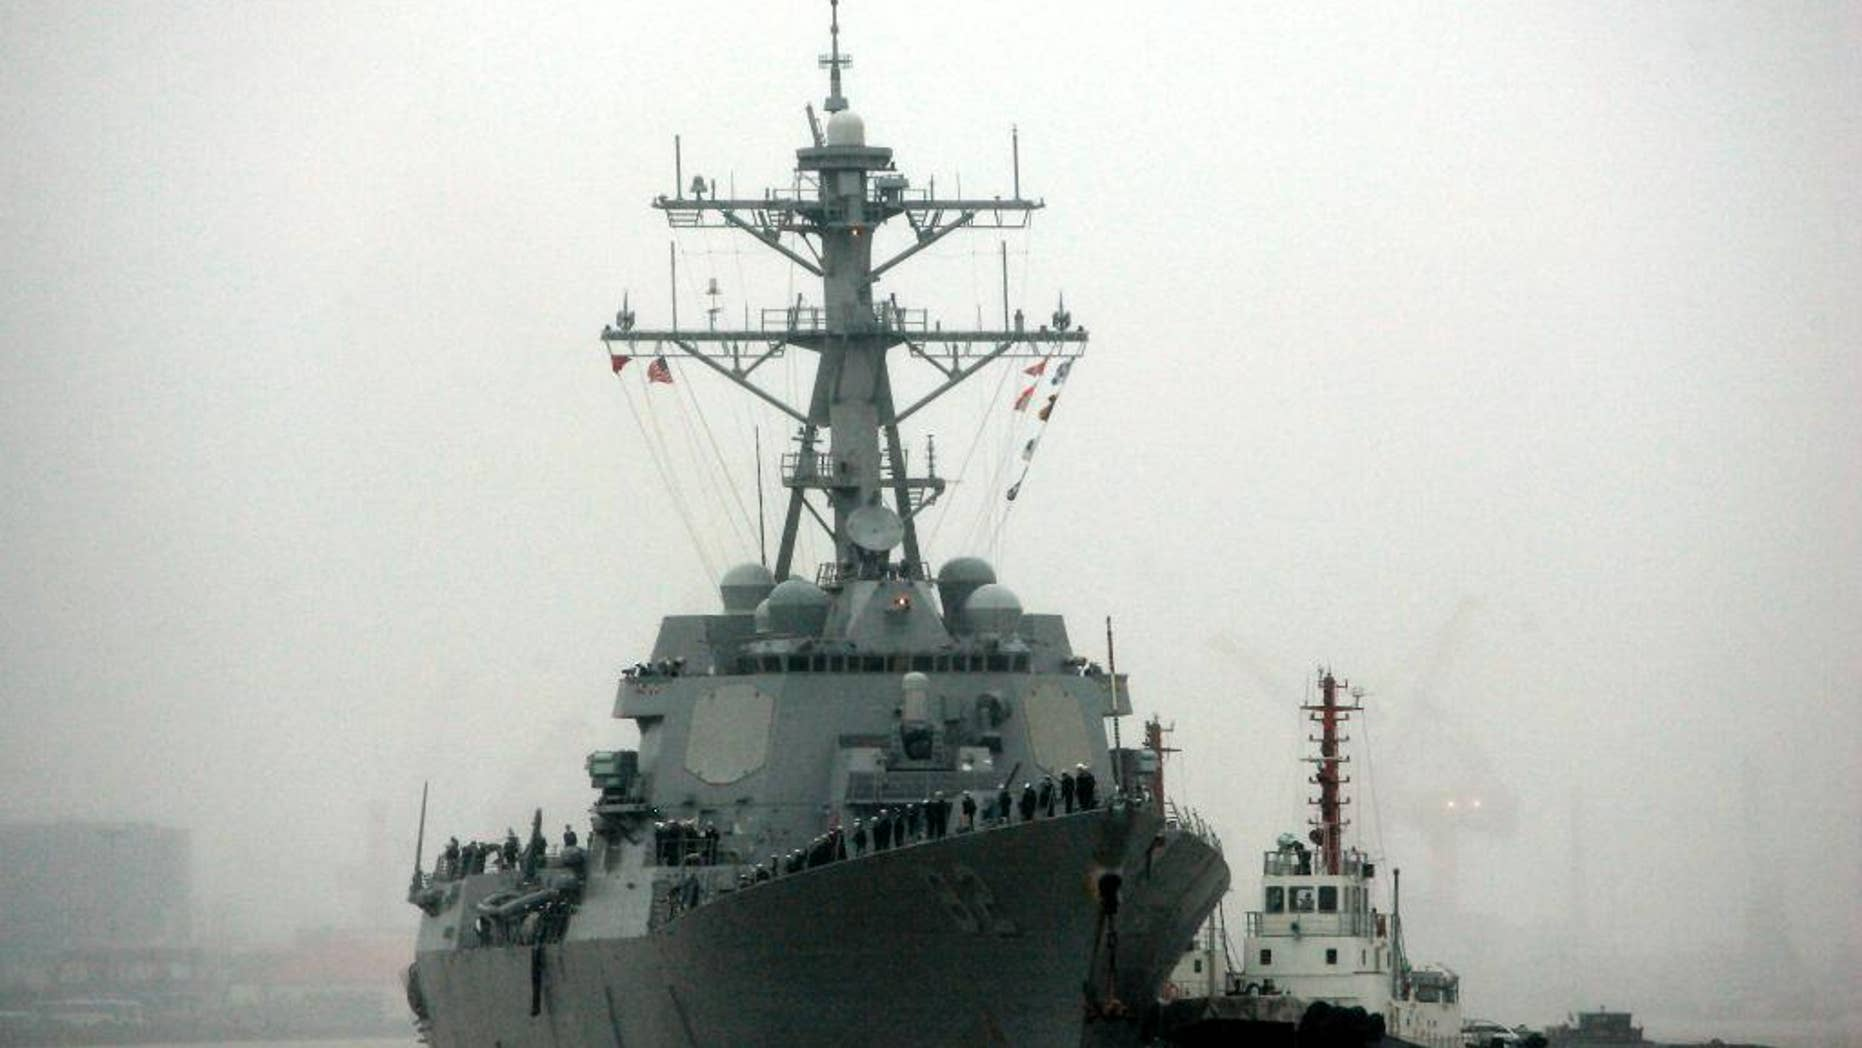 """In this April 8, 2008, file photo, guided missile destroyer USS Lassen arrives at the Shanghai International Passenger Quay in Shanghai, China, for a scheduled port visit. Just two days after the USS Lassen sailed past one of China's artificial islands in the South China Sea in a challenge to Chinese sovereignty claims, Defense Ministry spokesman Col. Yang Yujun said Thursday that China will take """"all necessary"""" measures in response to any future U.S. Navy incursions into what it considers its territorial waters around the islands. (AP Photo/Eugene Hoshiko, File)"""